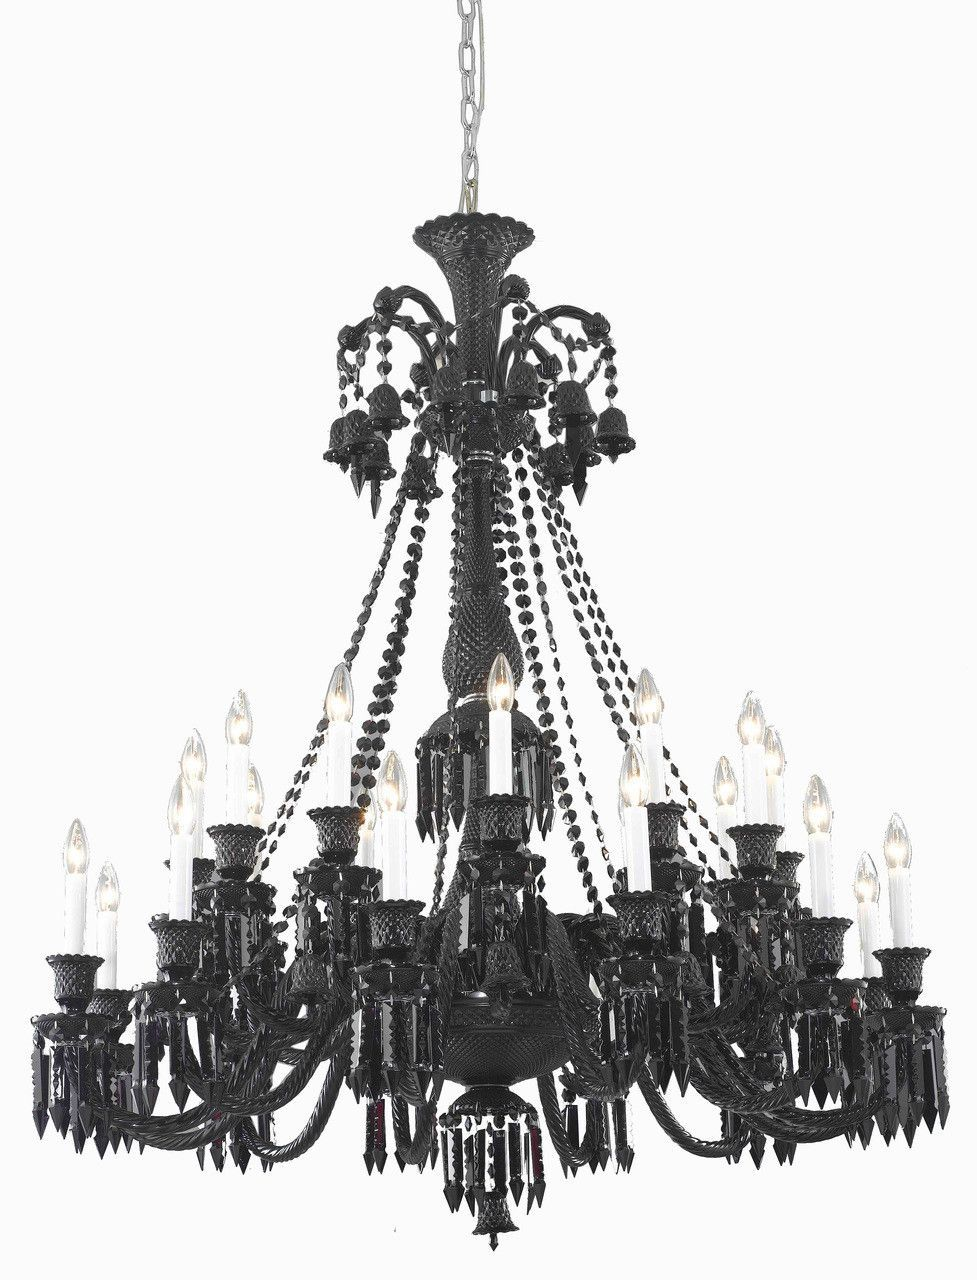 Majestic 24 light jet black chandelier in black finish 8924g44b jt majestic 24 light jet black chandelier in black finish 8924g44b jtec mozeypictures Images